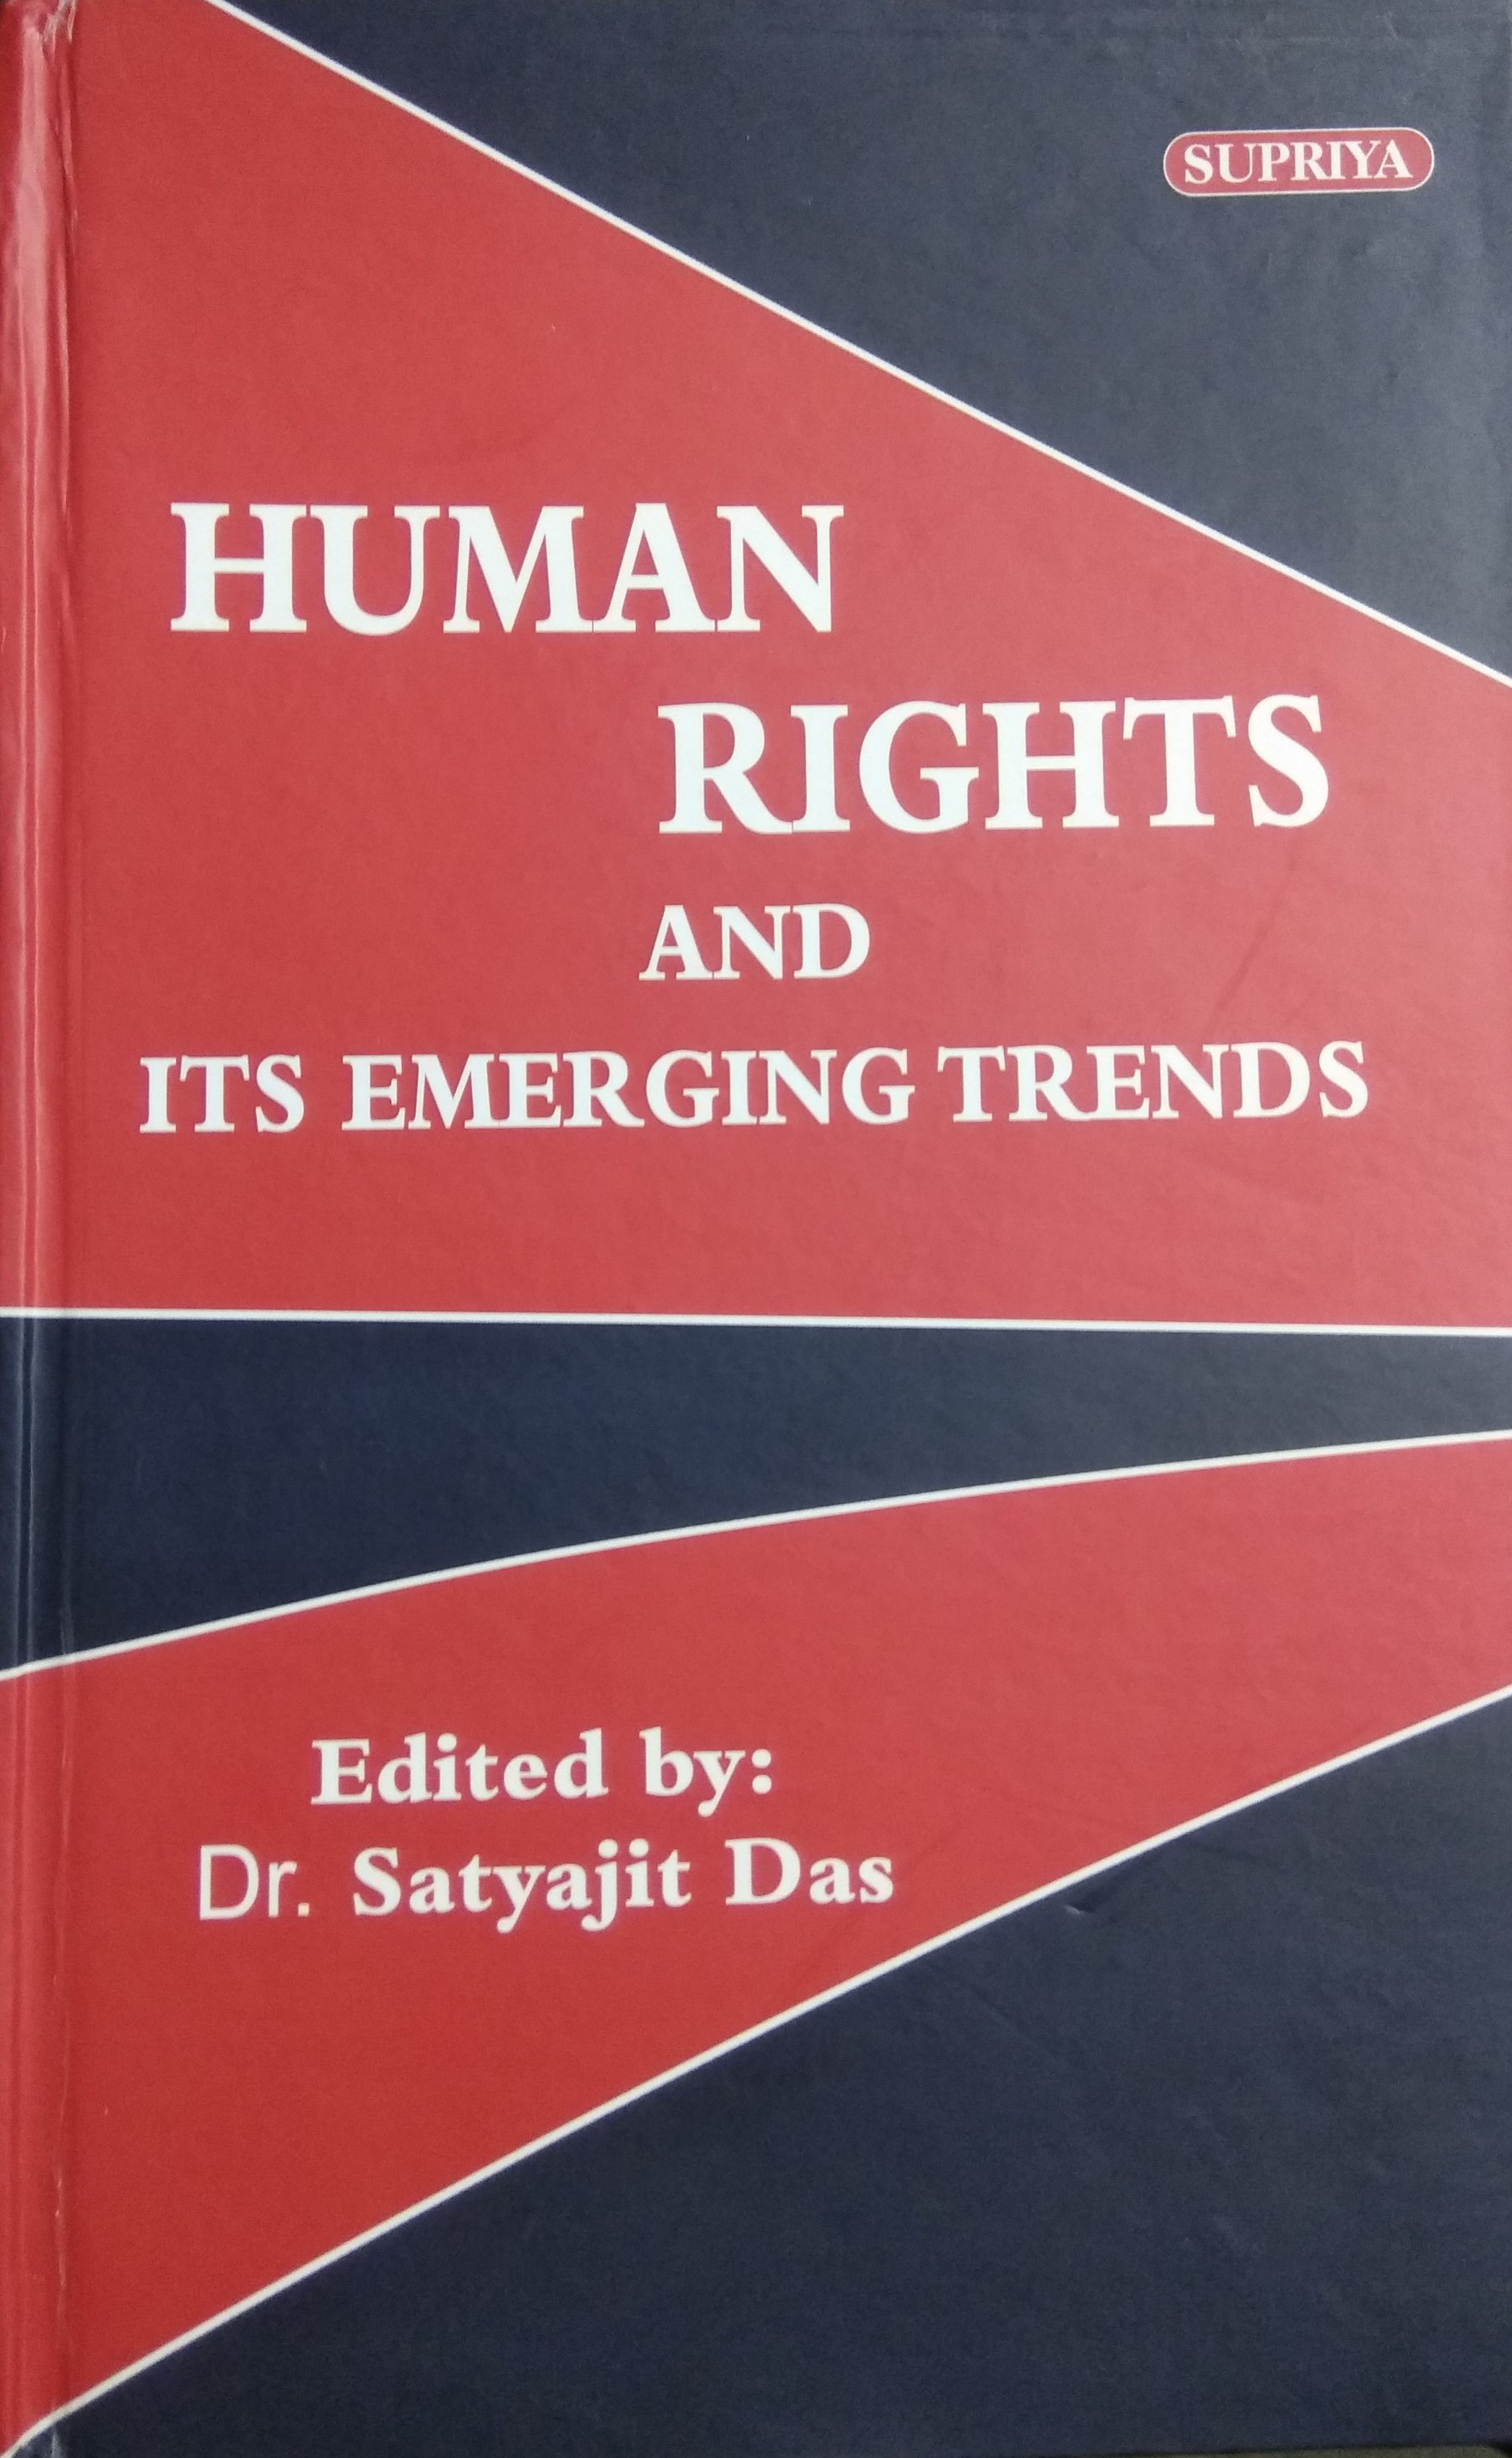 Human Rights and its Emerging Trends